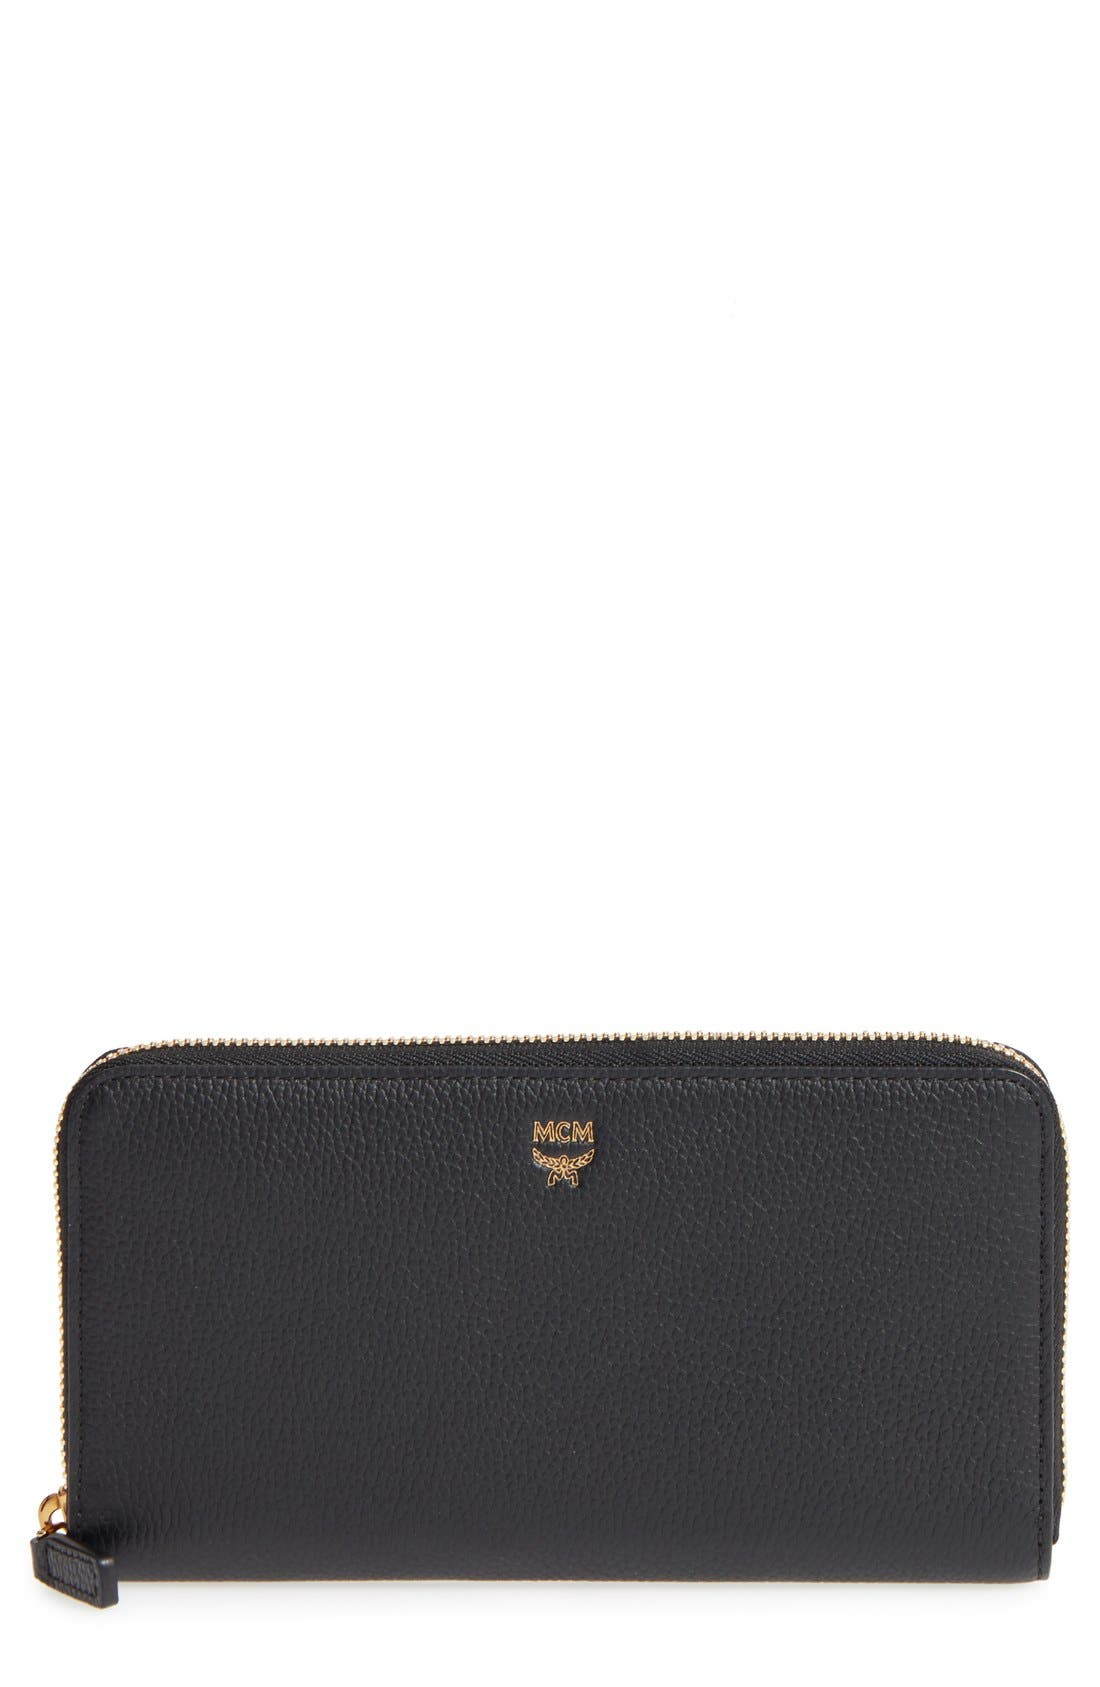 Alternate Image 1 Selected - MCM Milla Leather Zip Around Wallet